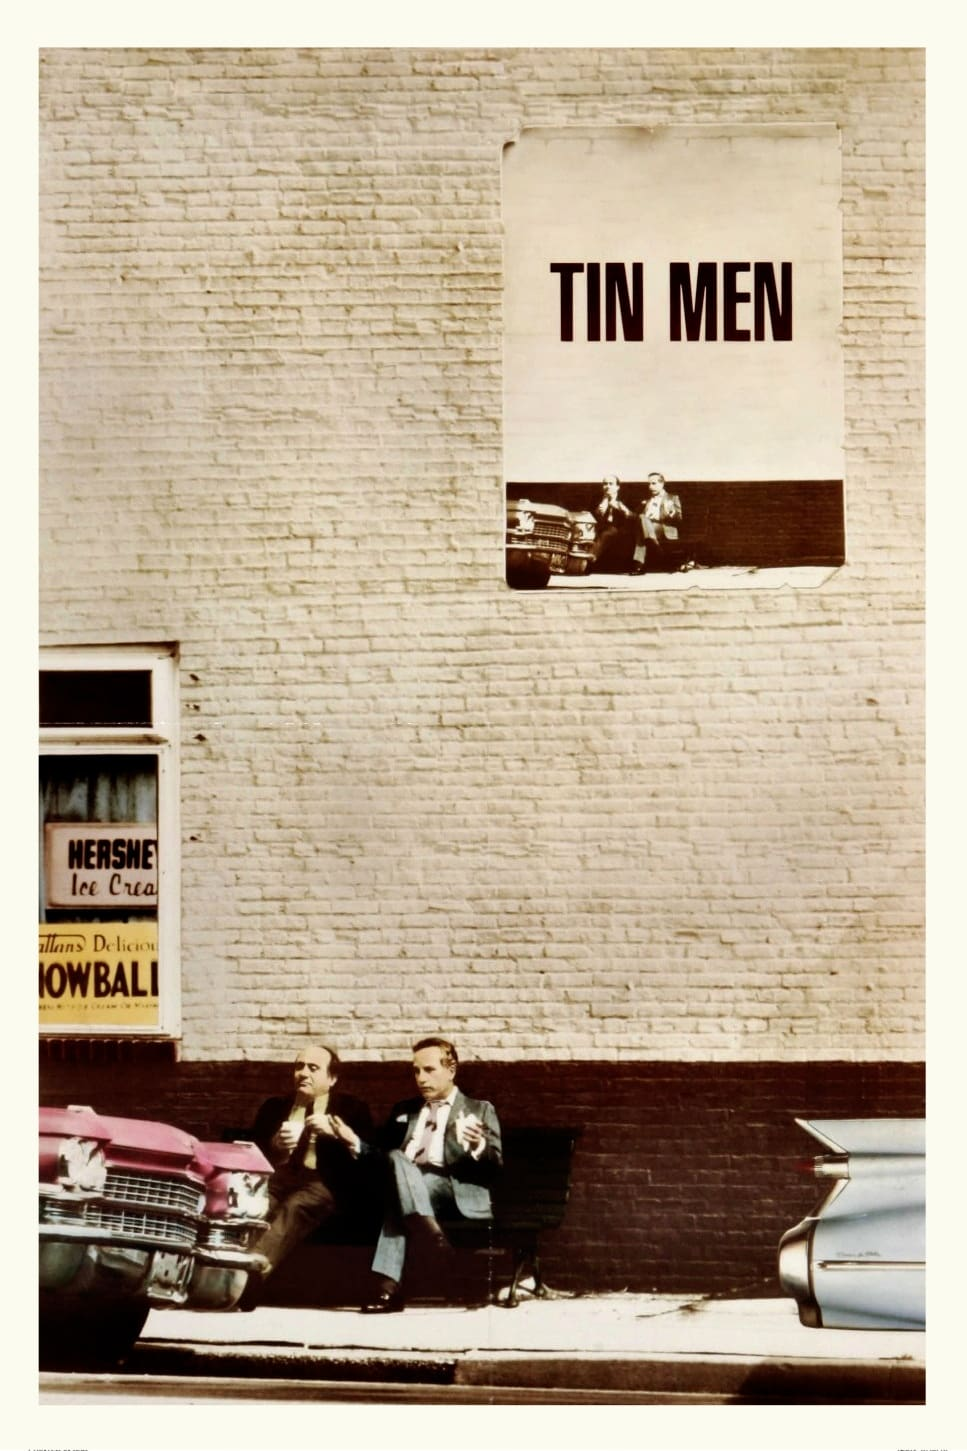 Image Tin Men